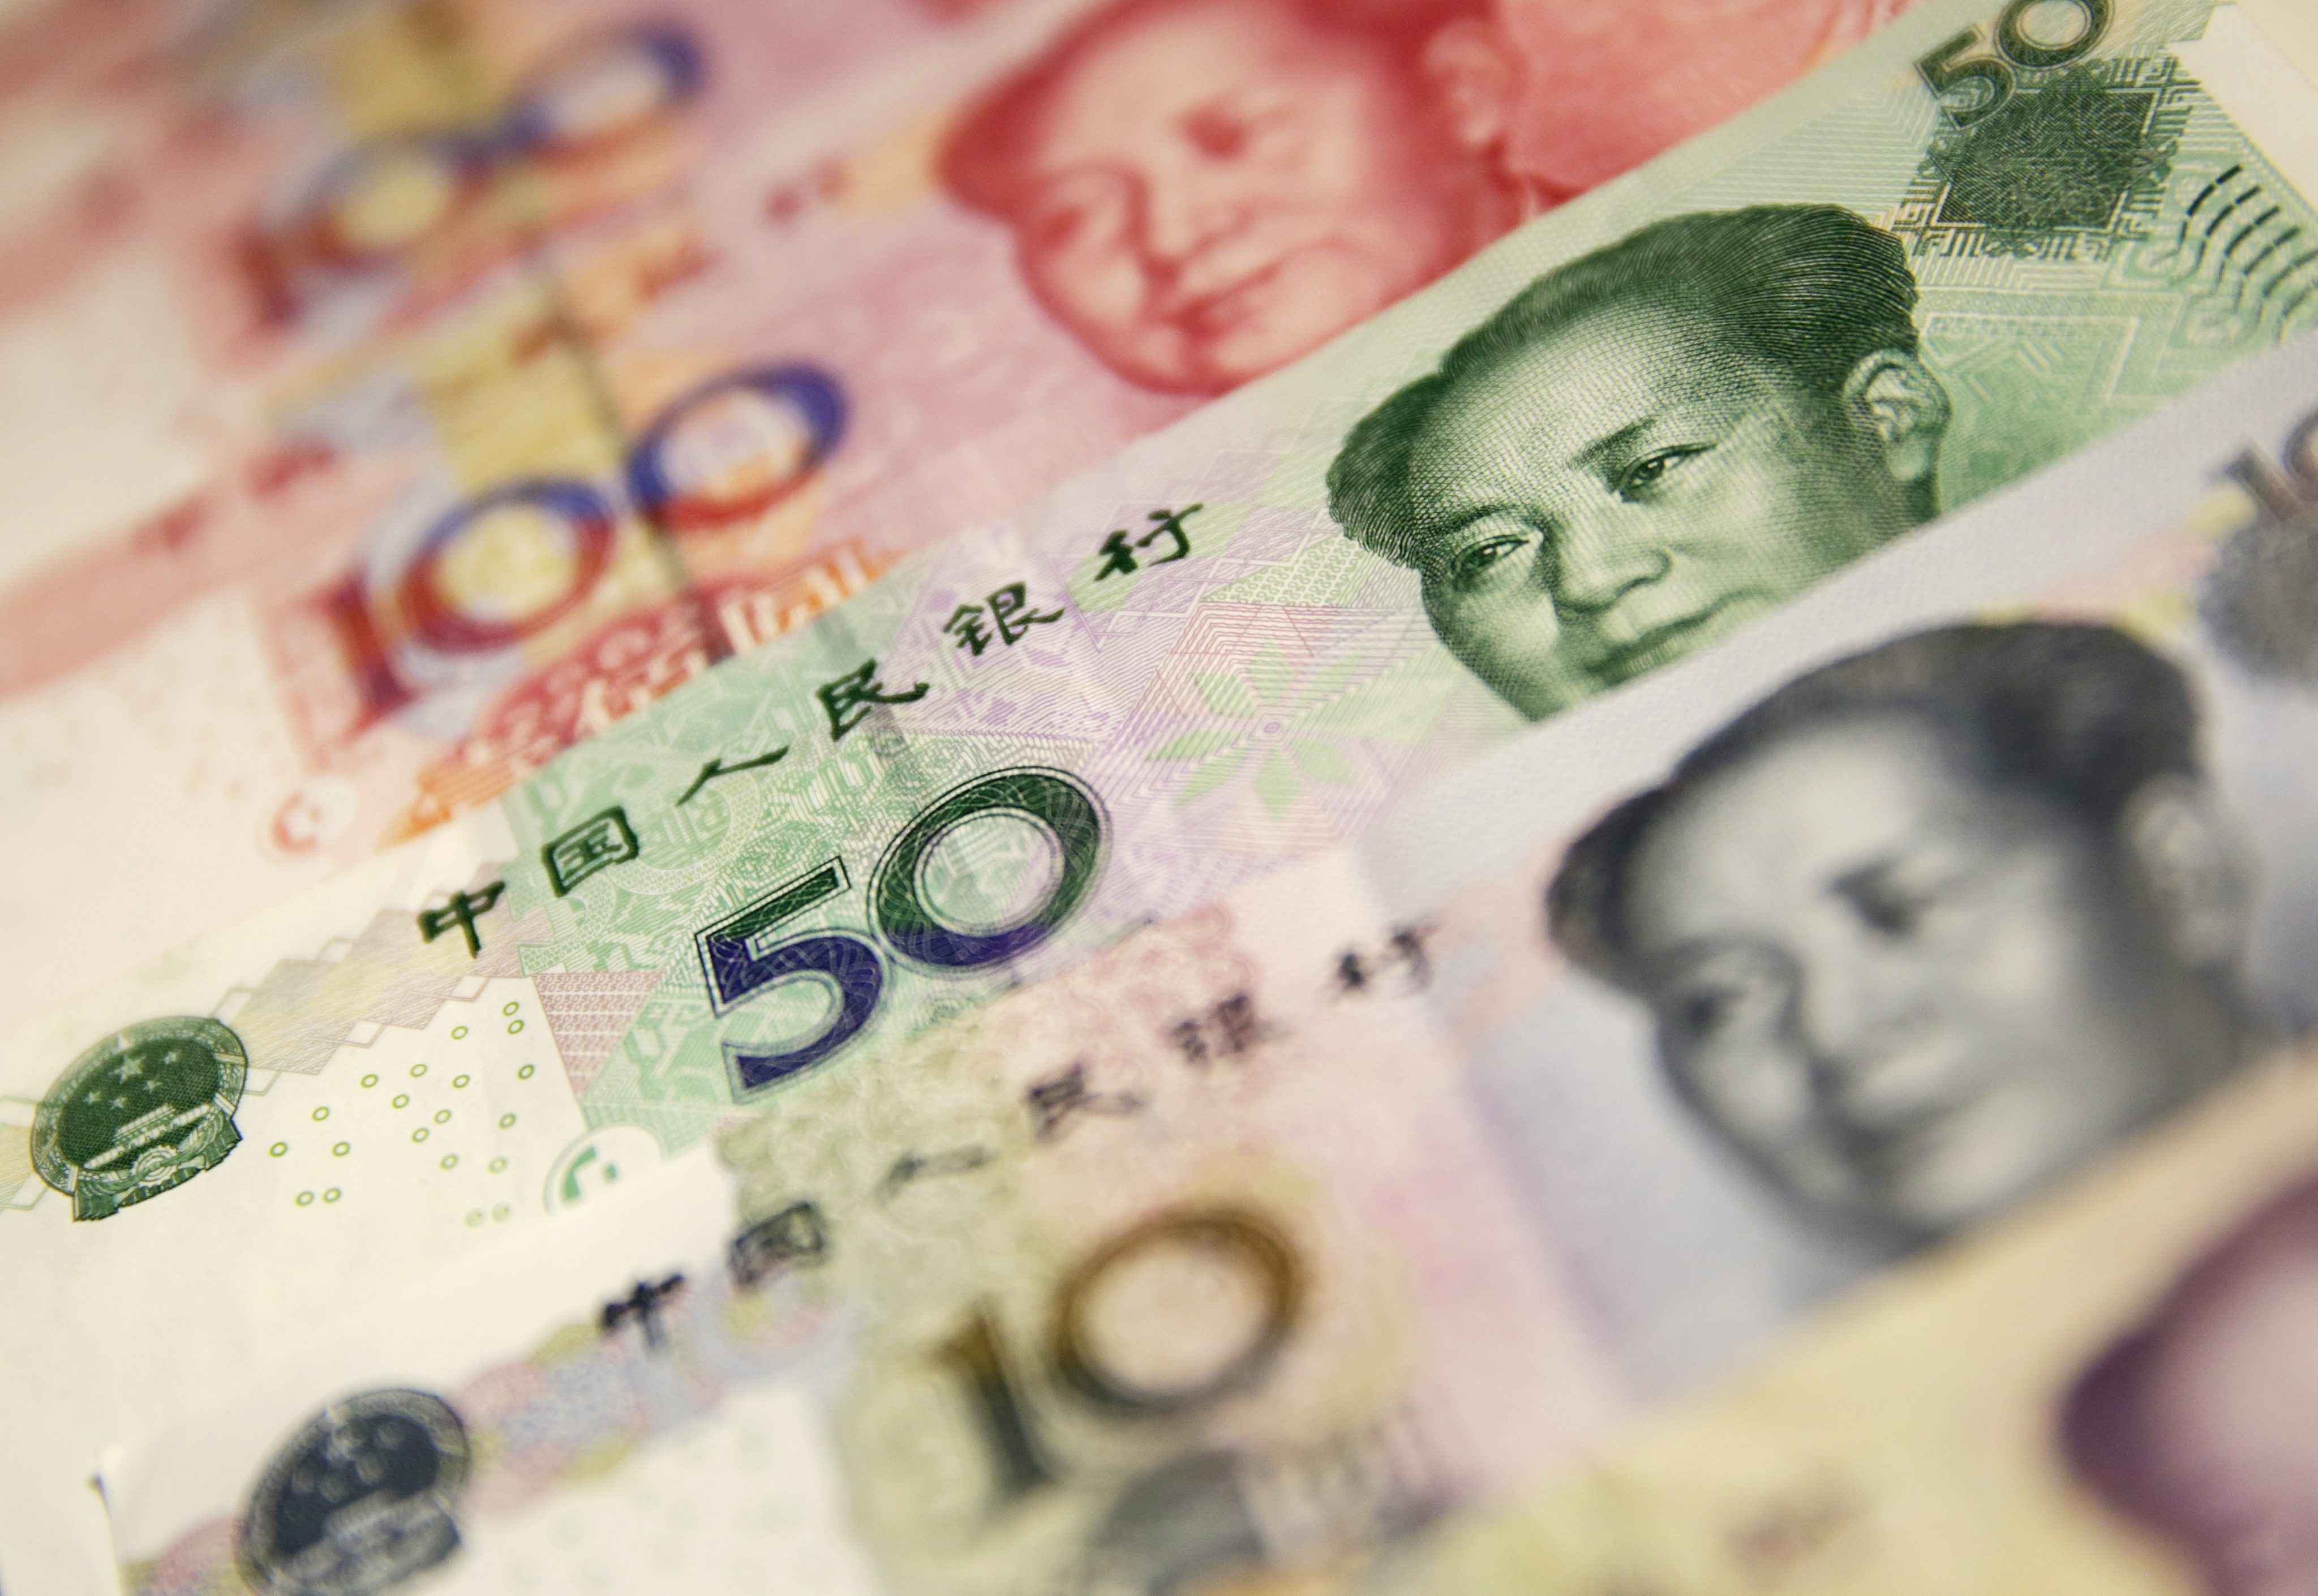 Chinese Yuan Or Renminbi (rmb) Notes in Beijing China 29 December 2015 China's Currency Fell to Its Weakest in More Than Four and a Half Years on 29 December 2015 the Yuan Also Known As the Renminbi Dropped 114 Basis Points to 6 4864 Against the Us Dollar on 29 December Its Weakest Since June 2011 According to Data From the China Foreign Exchange Trading System China BeijingChina Currency - Dec 2015